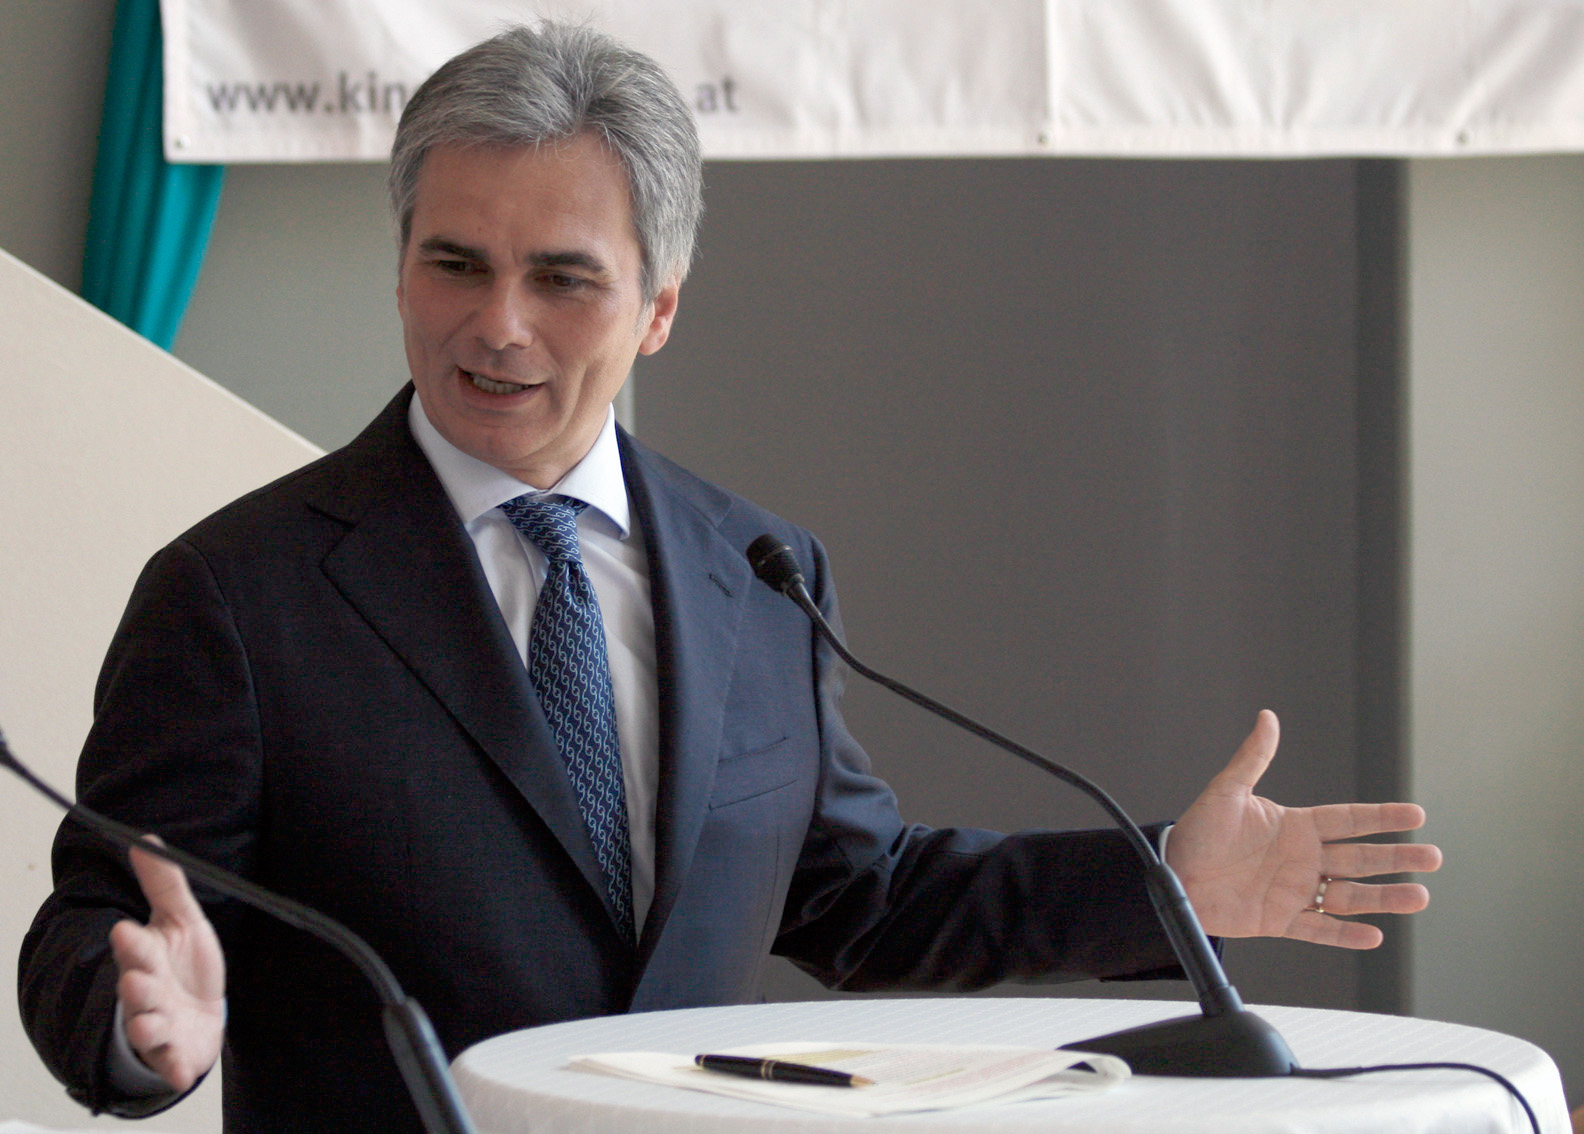 Austrian politician Werner Faymann at a press conference during the election campaign 2008.